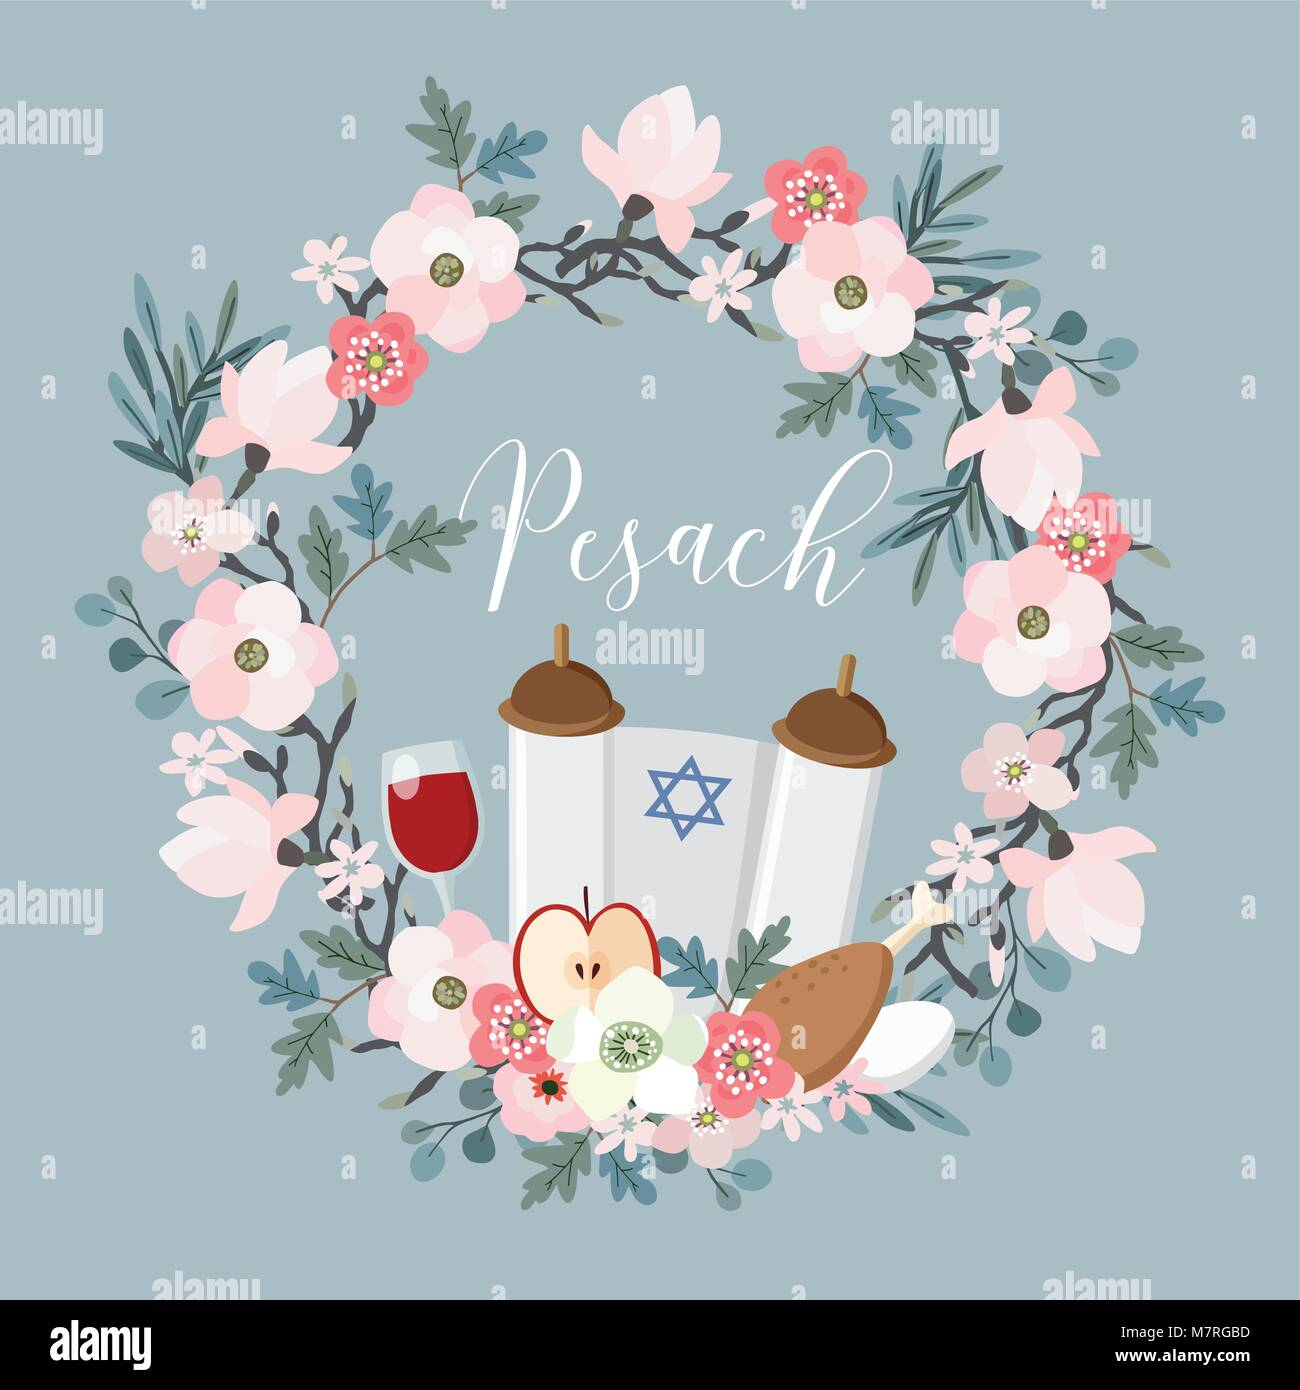 Pesach passover greeting card hand drawn floral wreath with torah pesach passover greeting card hand drawn floral wreath with torah jewish star egg apple glass of wine olive branches and flowers m4hsunfo